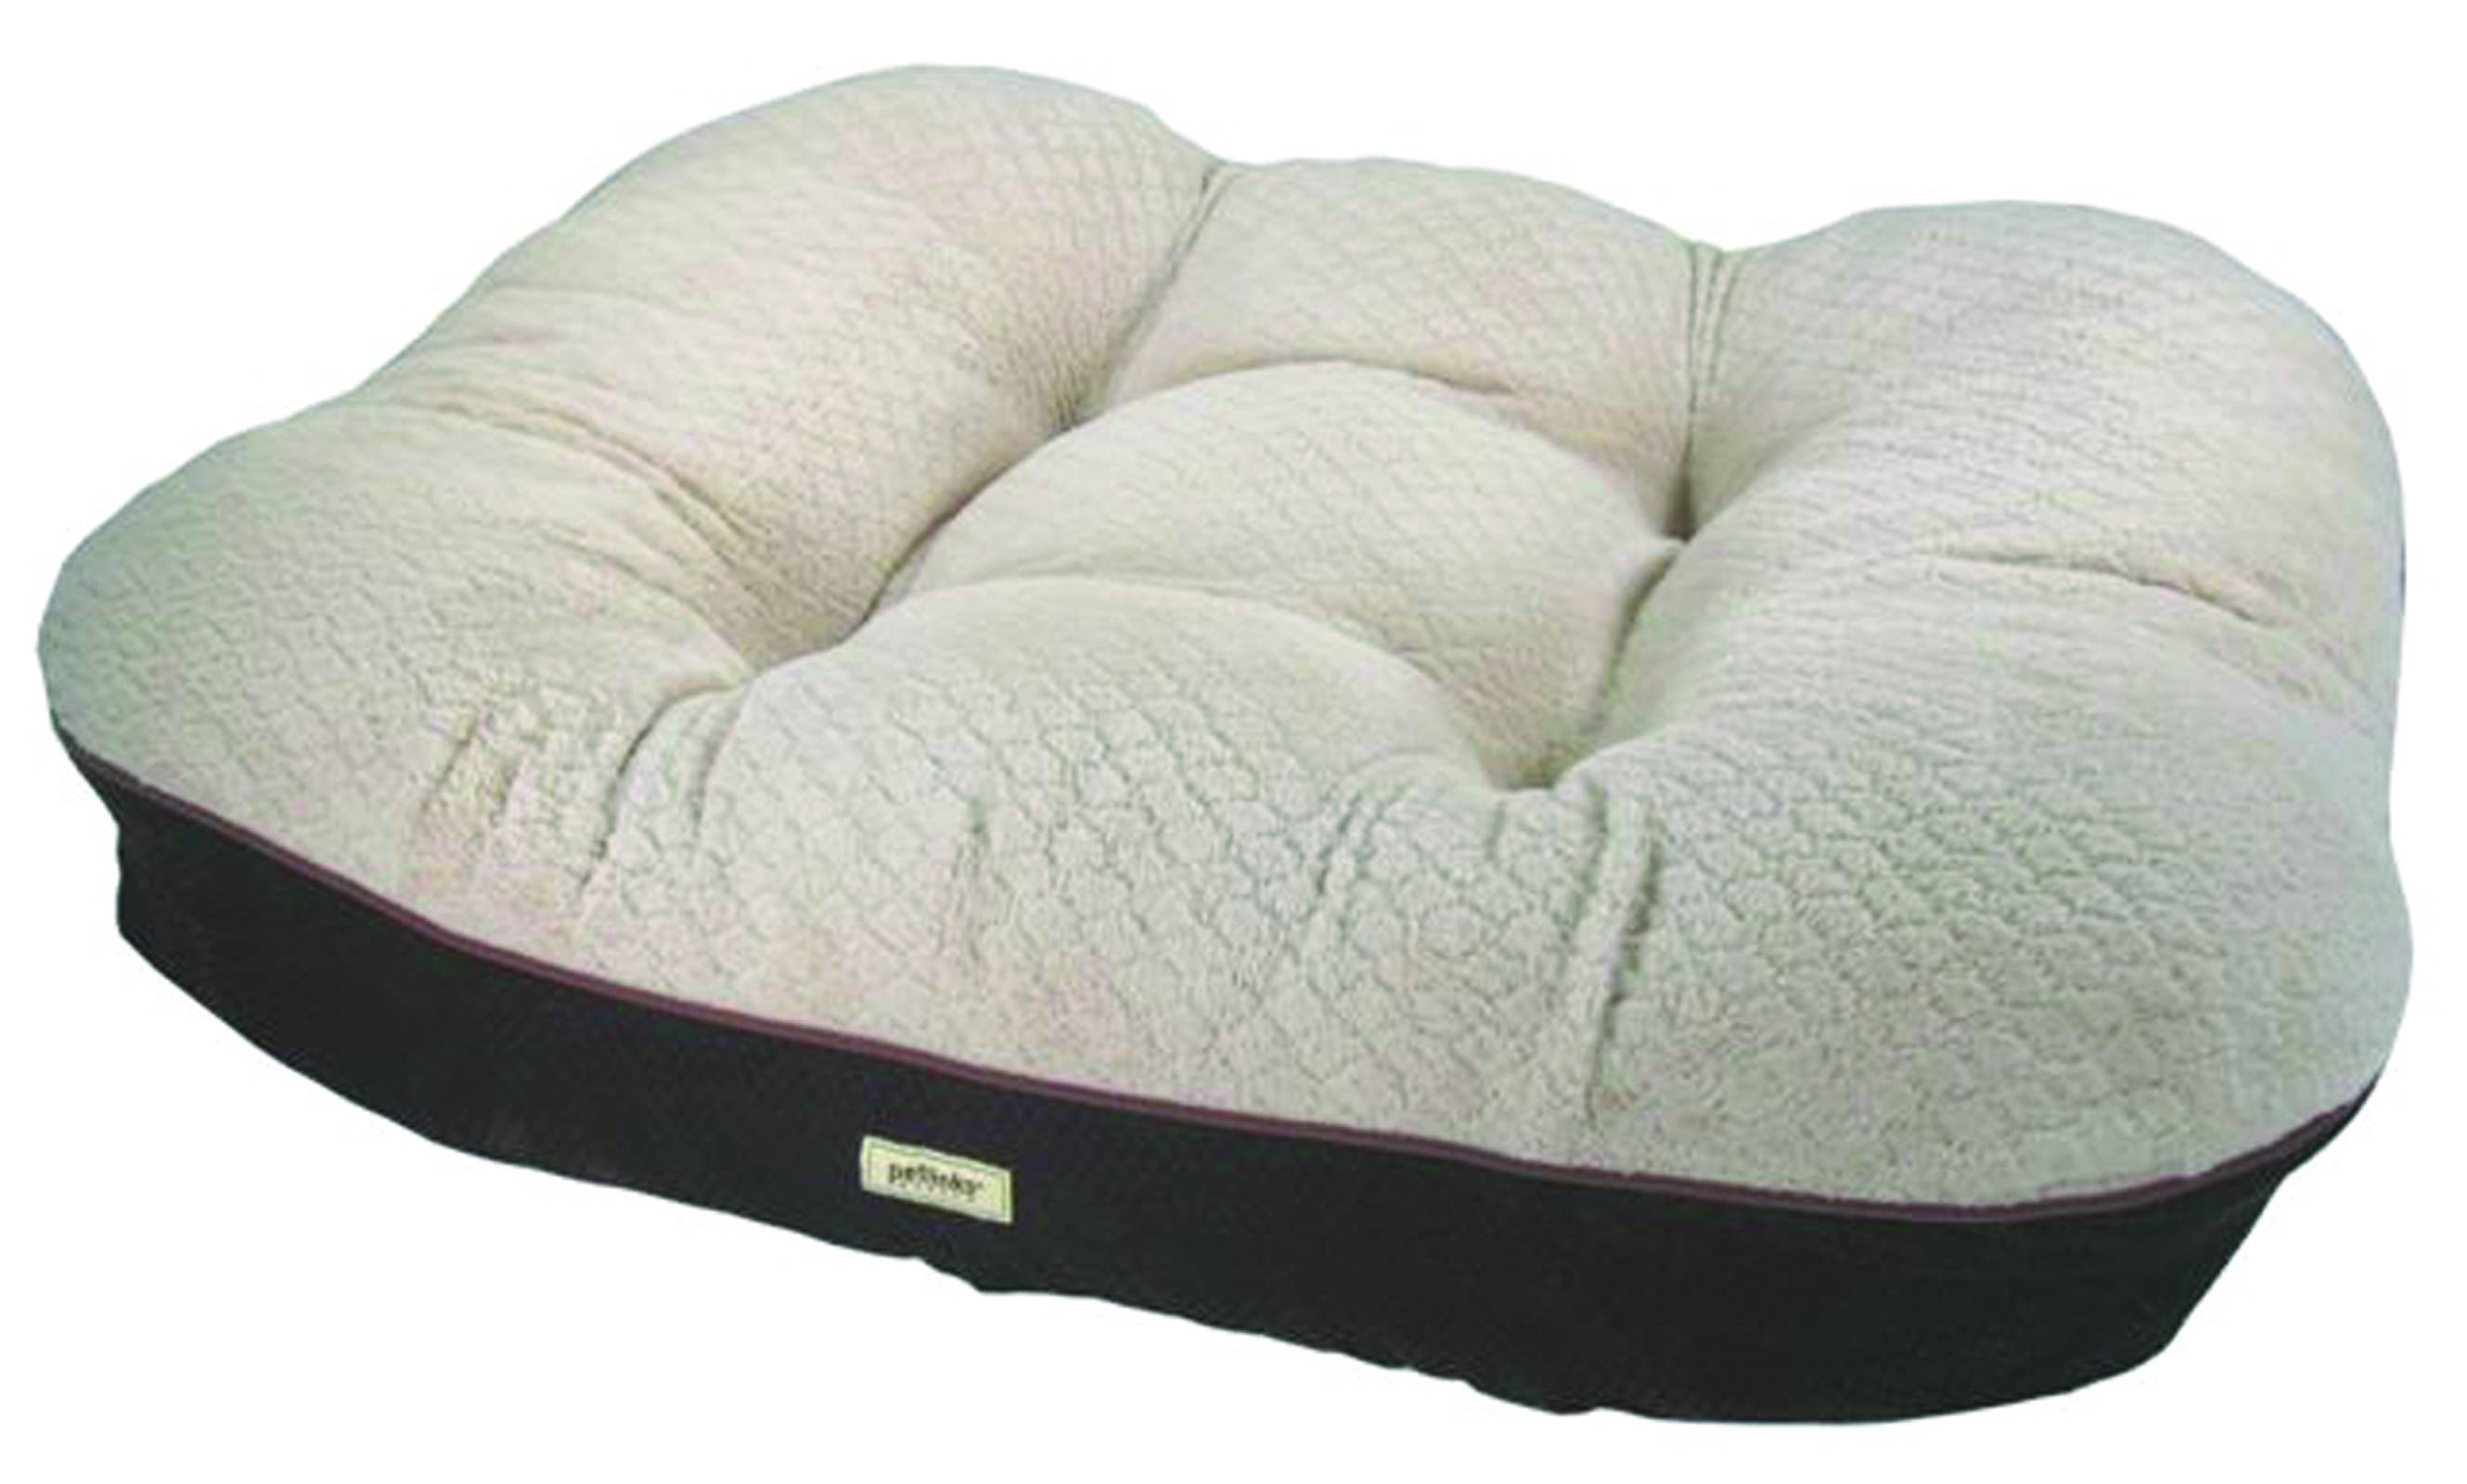 Oct 12,  · Poochplanet Dog Bed Extra Large – Buy products related to pooch planet dog bed products and see what customers say I have three dogs that share a very large kennel and they love this bed. PoochPlanet 40 x 28 x 10 RestoreNest Memory Foam Dog Bed, PoochPlanetRestfulRemedy Therapeutic Gel Memory Foam Pet Bed, Large, Brown.